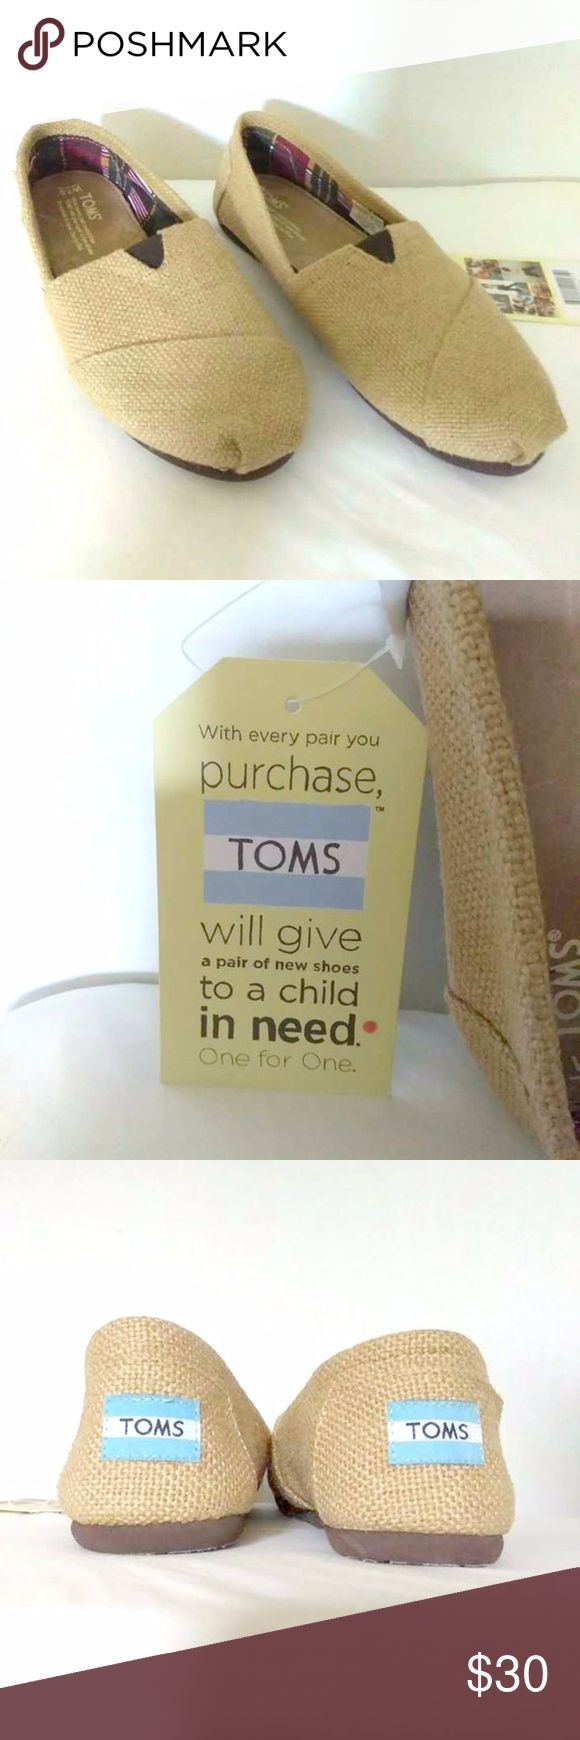 NEW Burlap TOMS 7.5 NWT BETTER DEALS WHEN YOU BUNDLE   NEW Burlap TOMS 7.5 NWT  Tags Attached~ Never Worn   No tears, stains or smells, Home is NON Smoking  I welcome OFFERS, Offer BUNDLED Pricing and Offer FAST Shipping. Toms Shoes